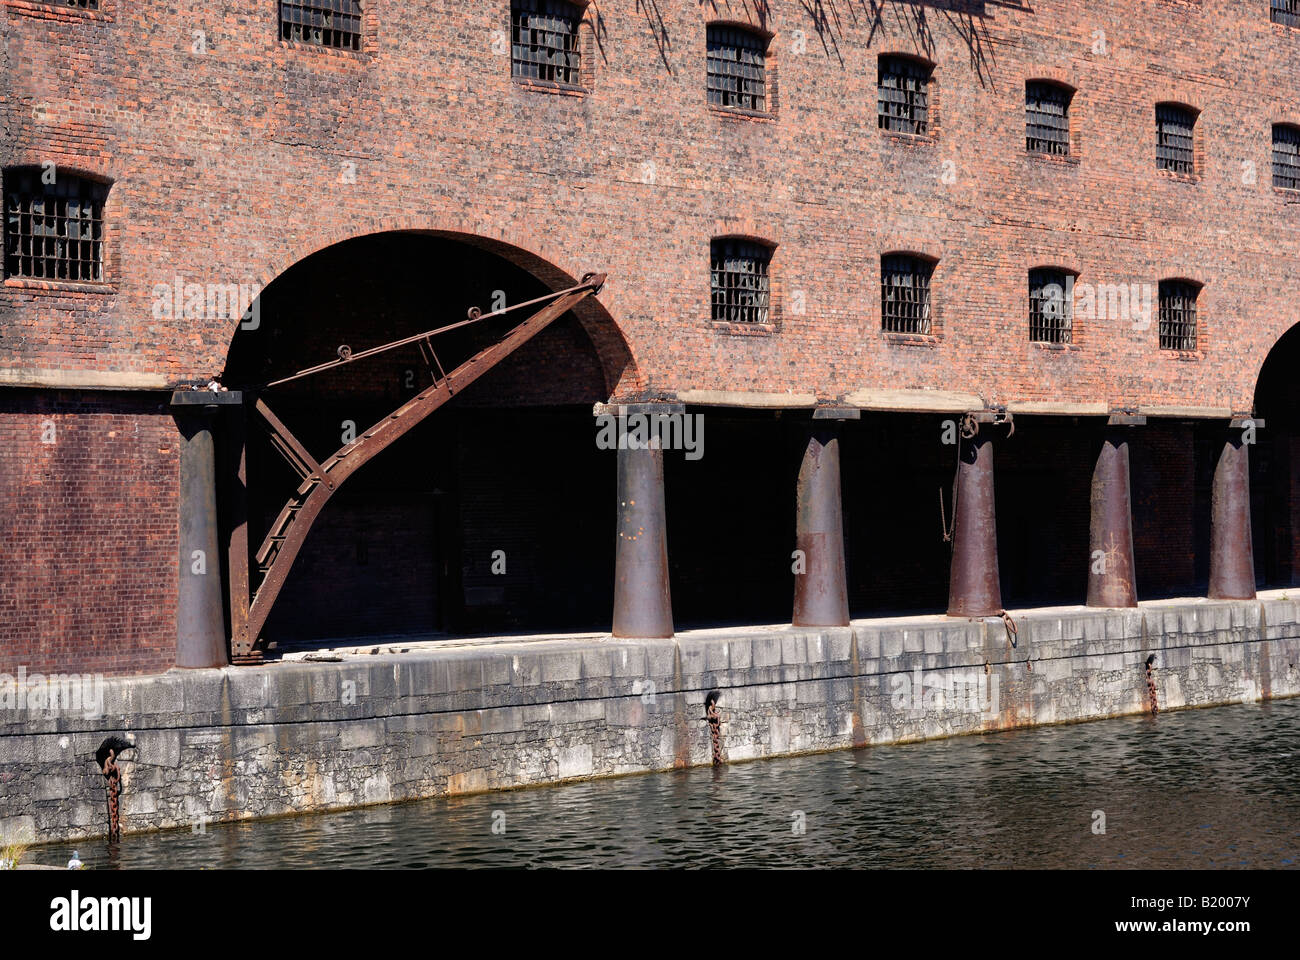 Stanley Dock in Liverpool grade II listed buildings Stock Photo